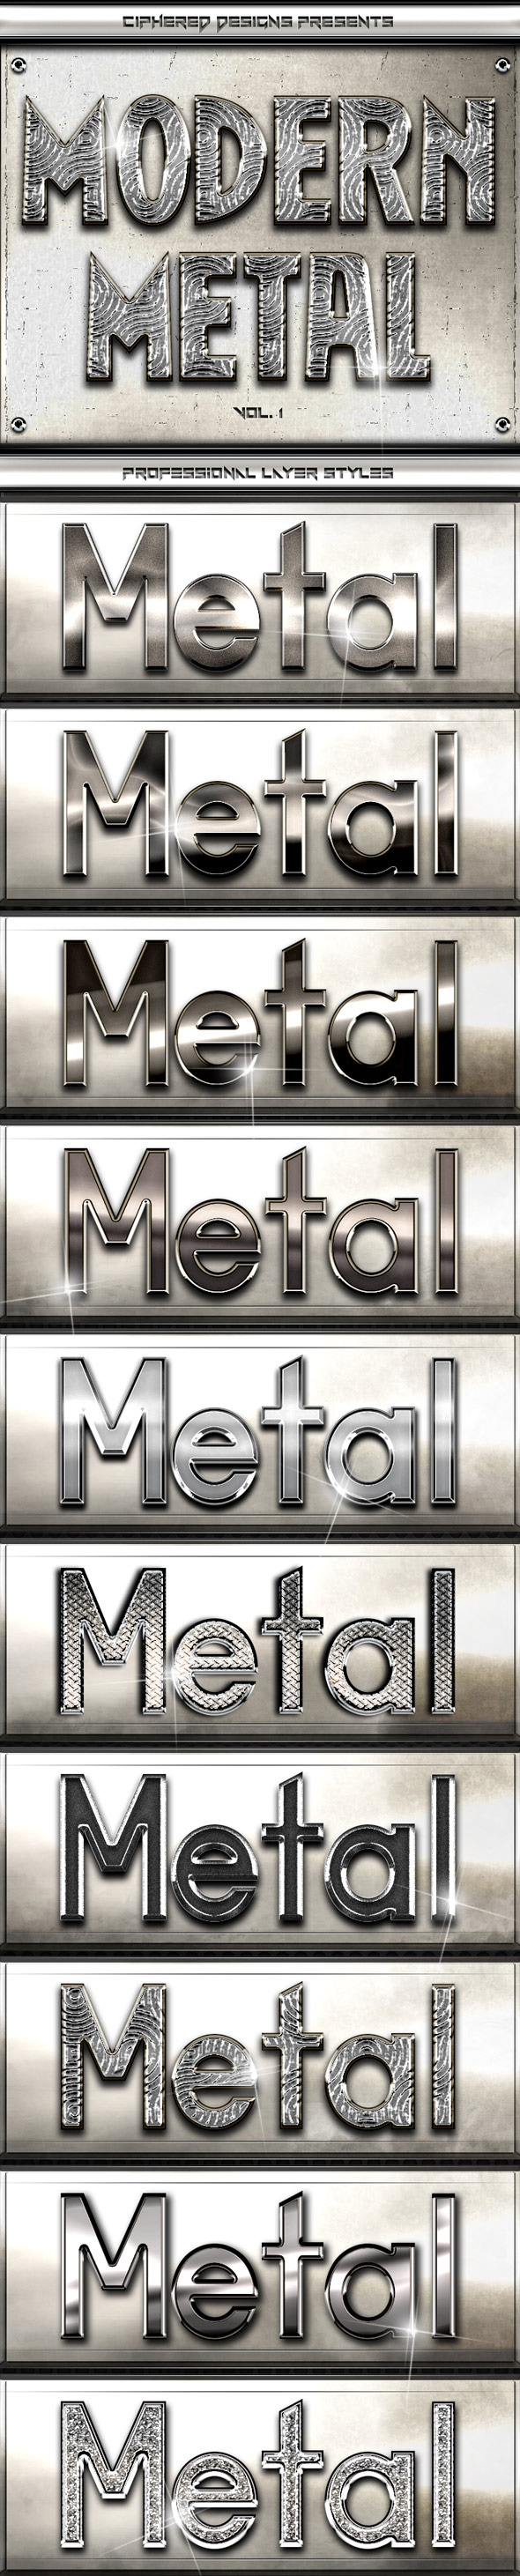 Modern Metal - Professional Layer Styles - Text Effects Styles